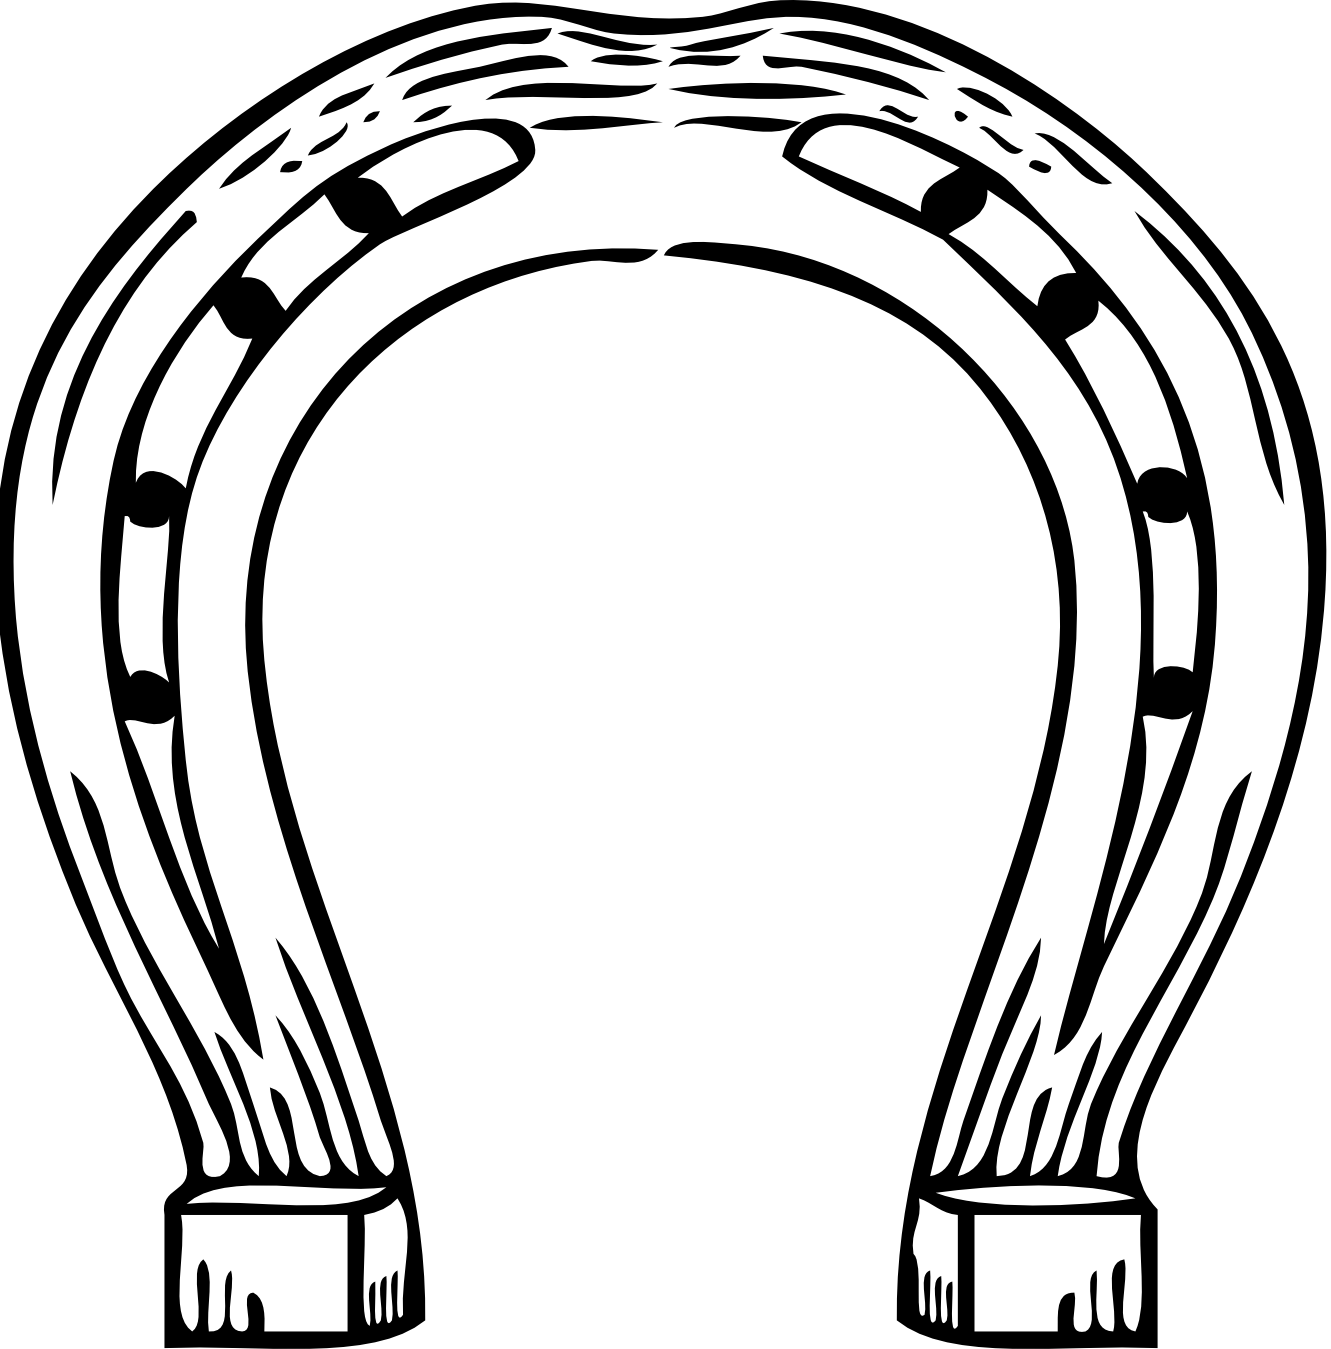 horse shoe clipart black and white